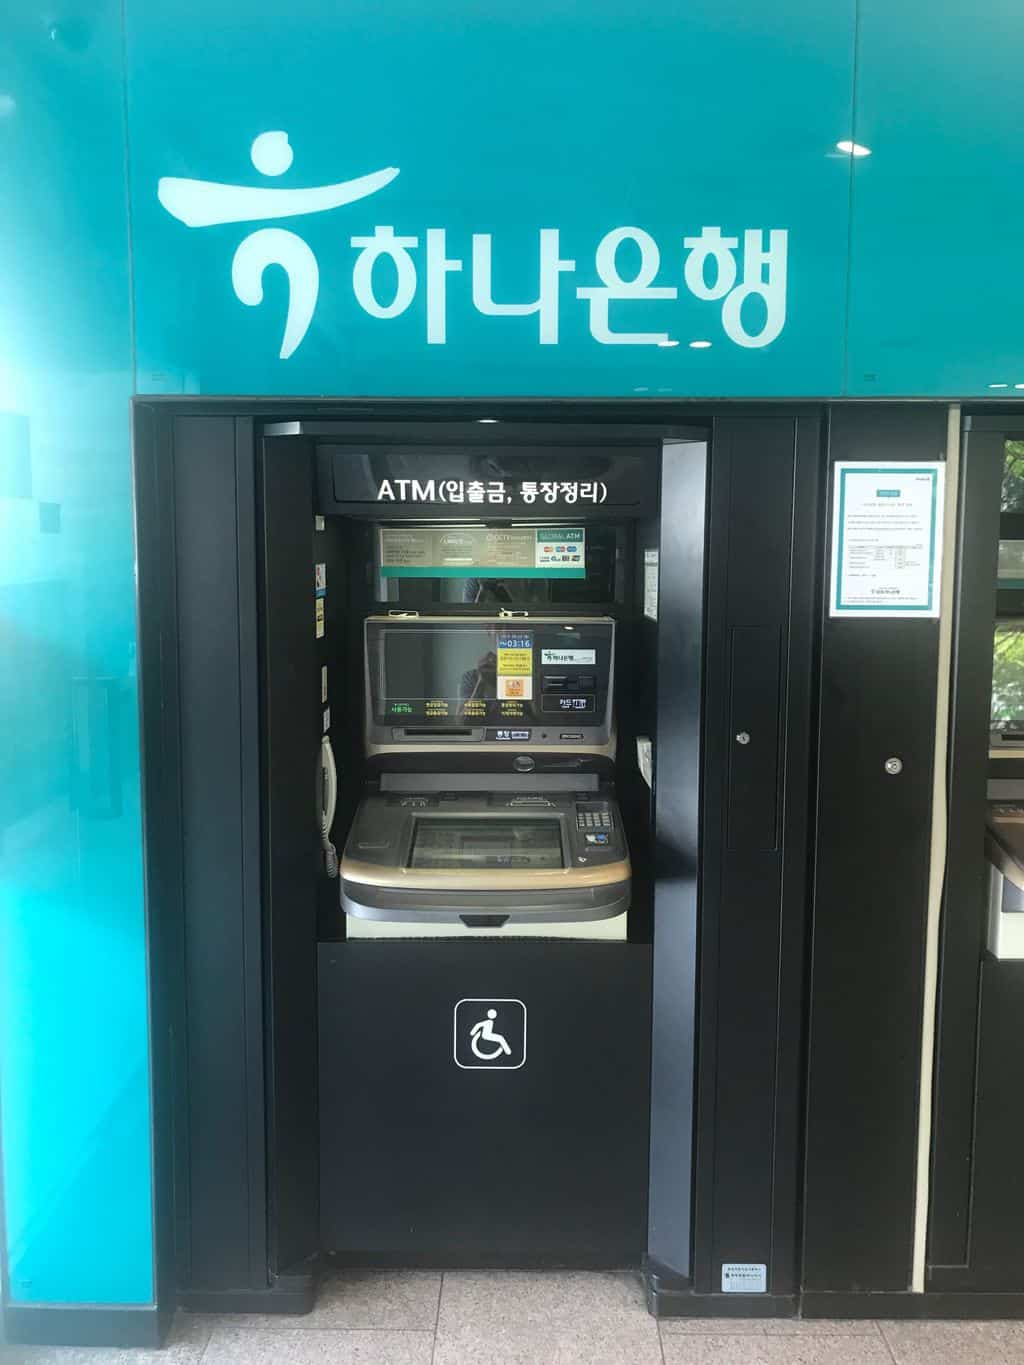 KEB Hana ATM in Seoul, South Korea